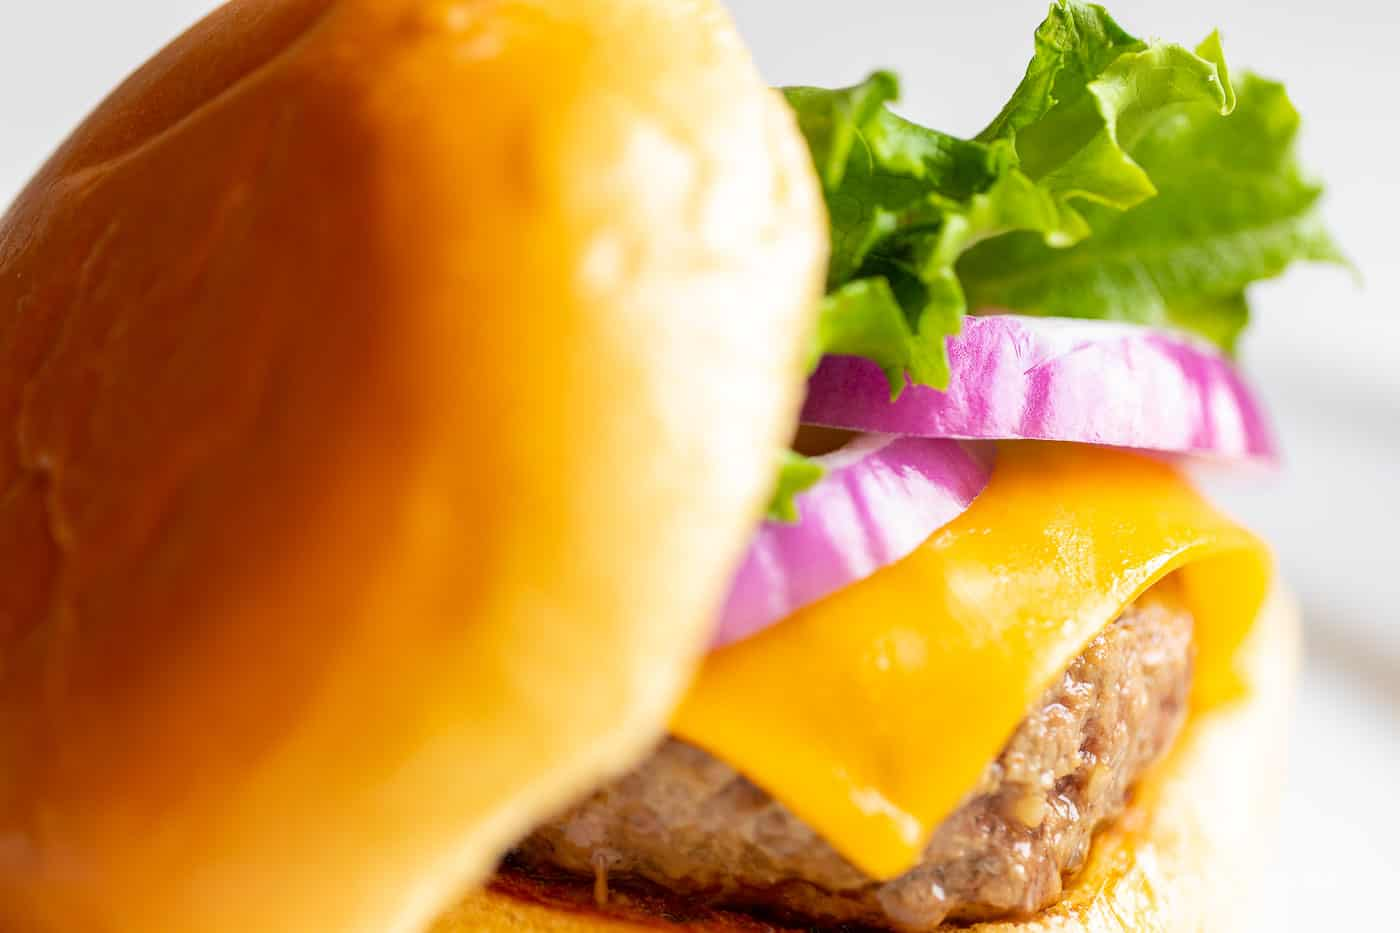 A juicy burger with lettuce, cheese, and onions on a white plate.